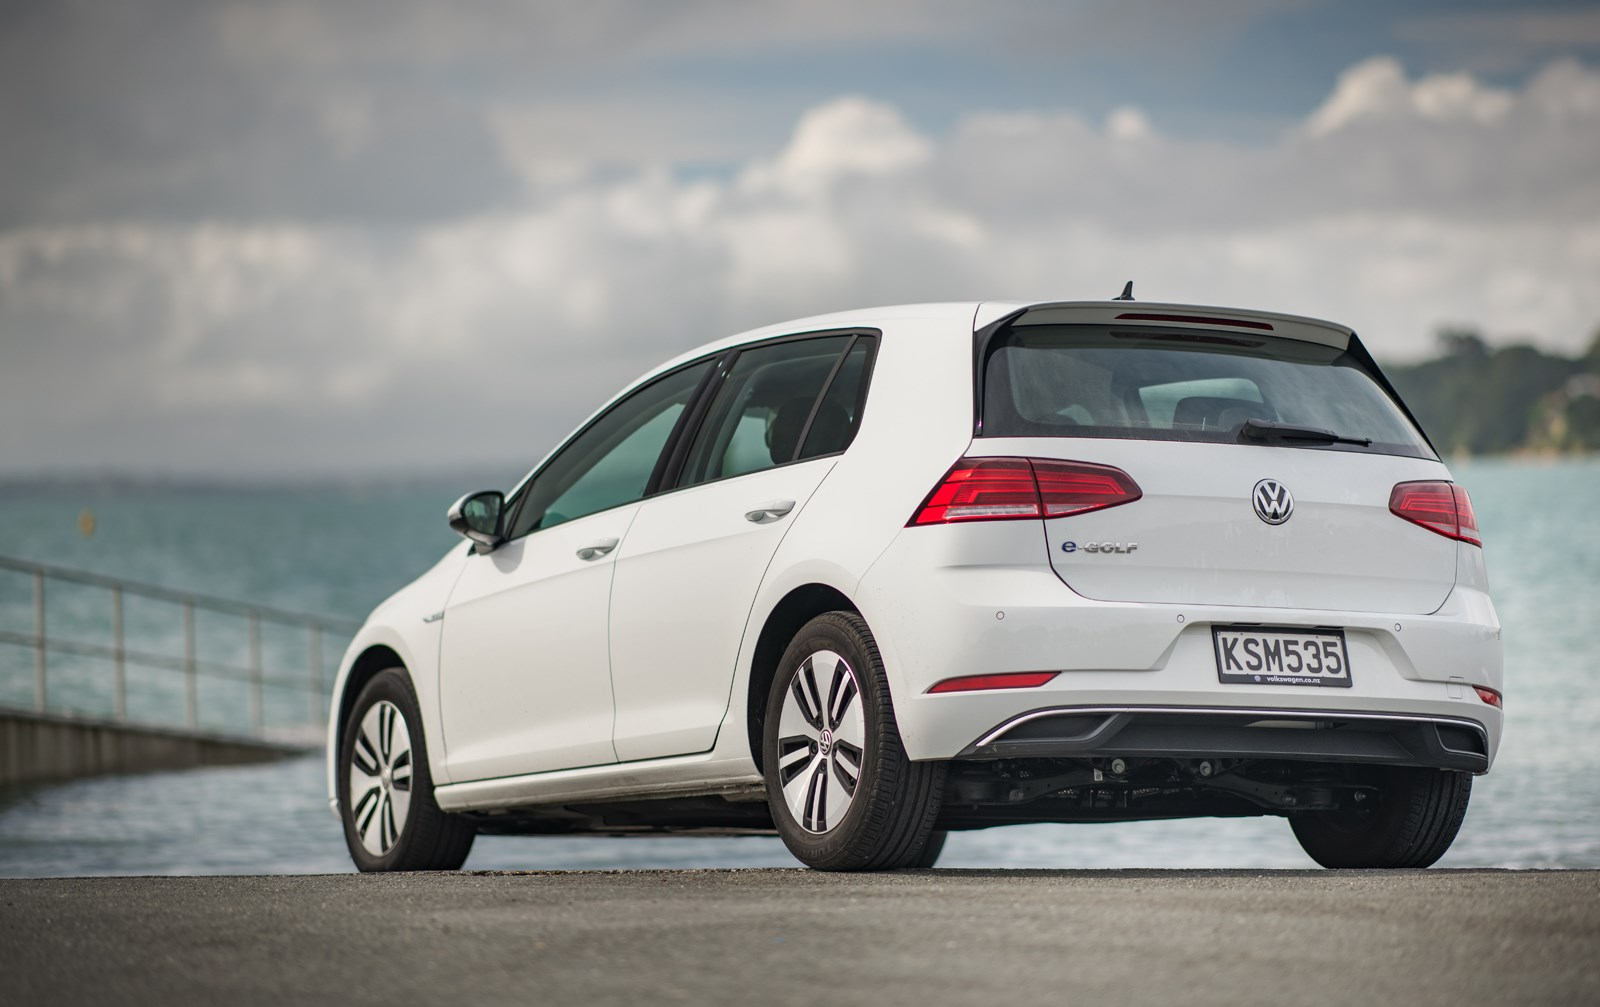 The E Golf May Be More Expensive Than Competing Hyundai Ioniq Models But It Offers A Greater Range And Comes With Handling Characteristics That